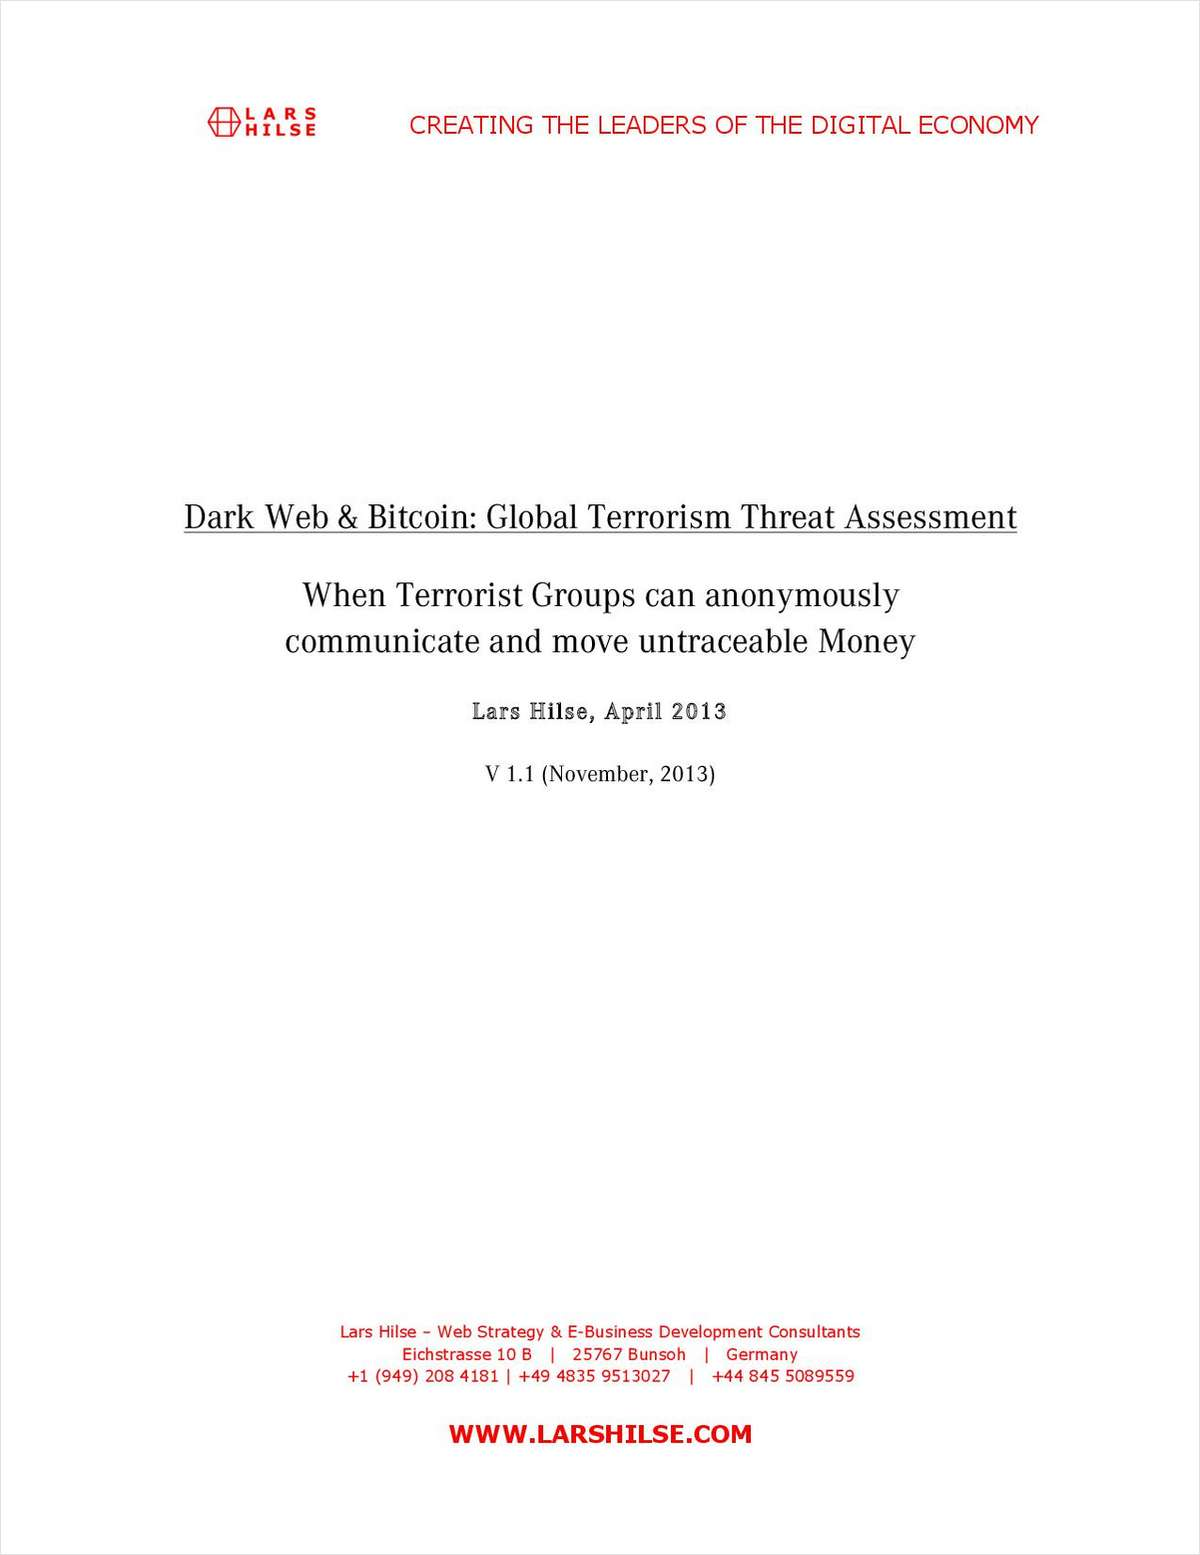 Dark Web & Bitcoin: Global Terrorism Threat Assessment